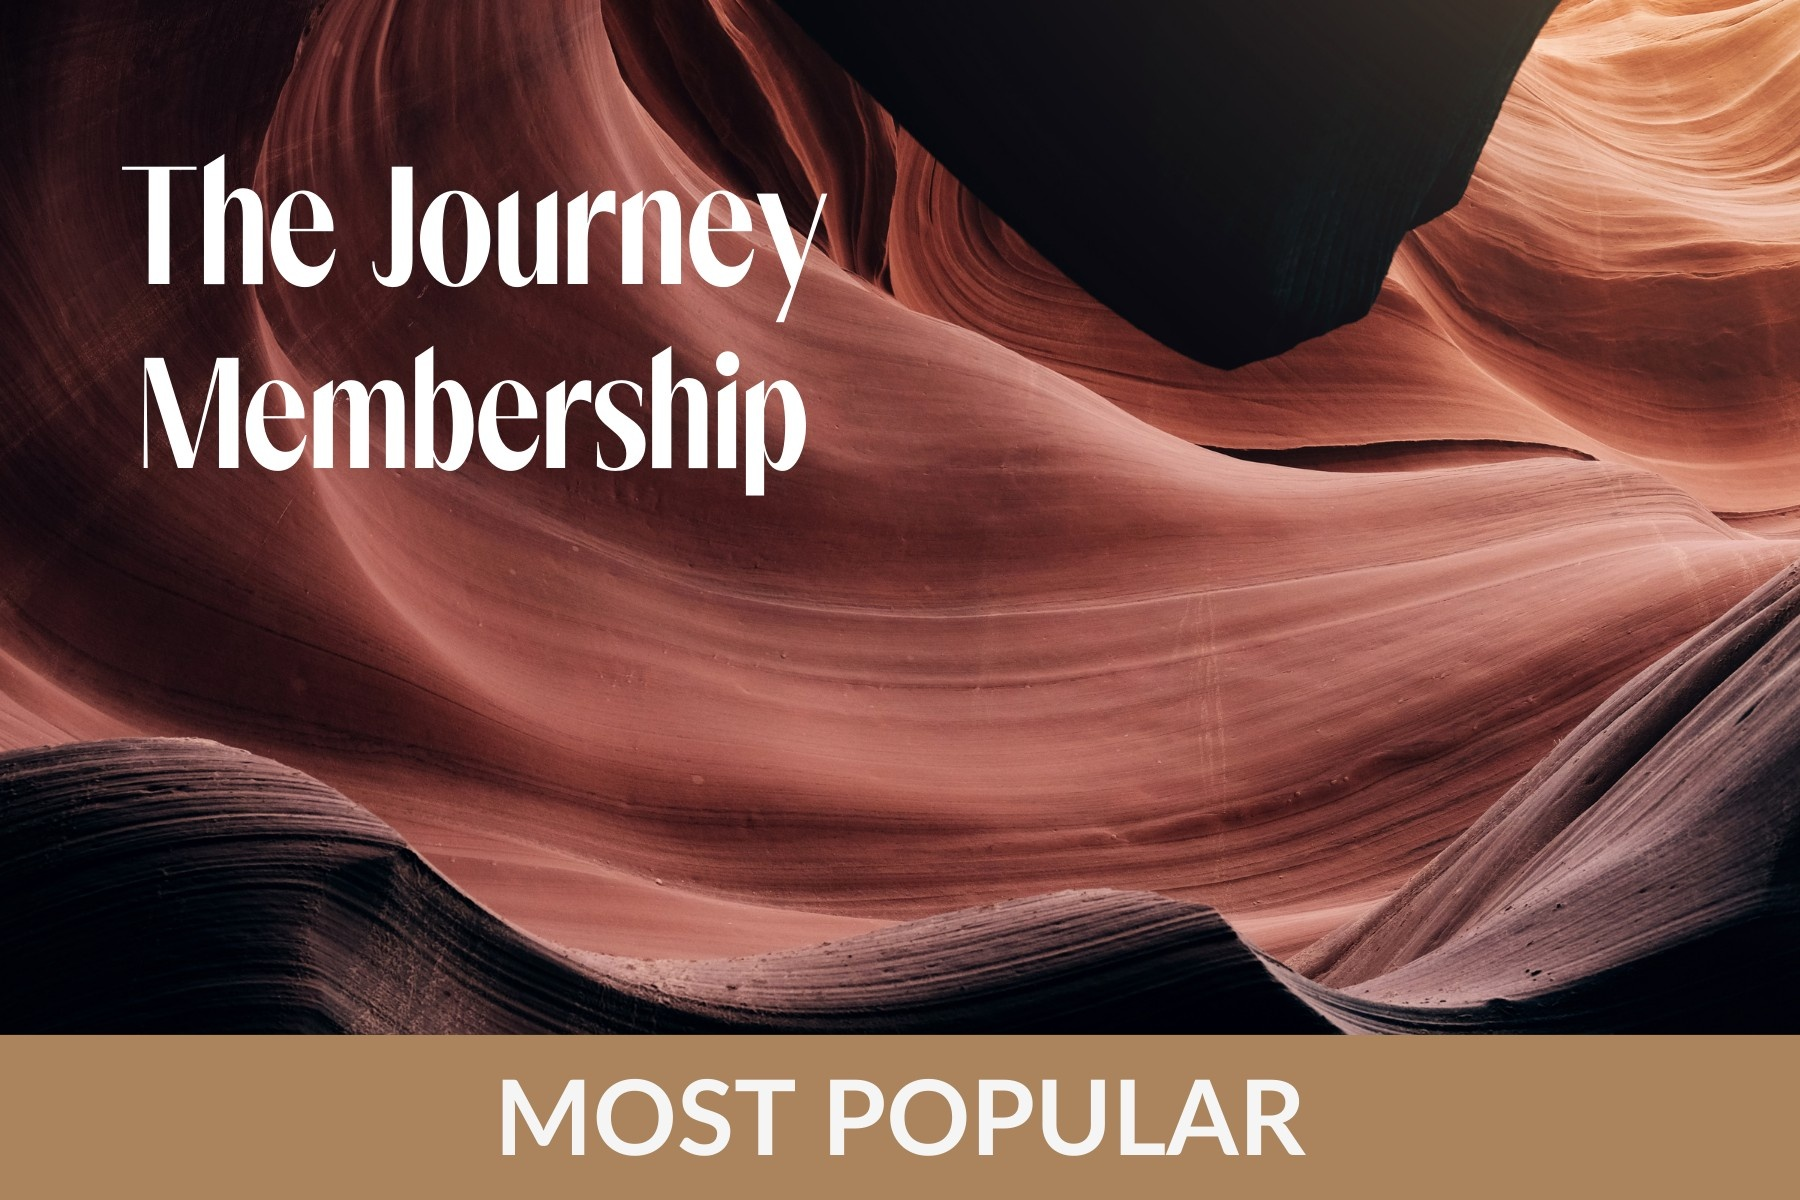 The Journey Membership from Cultivate Meditation and Wellness